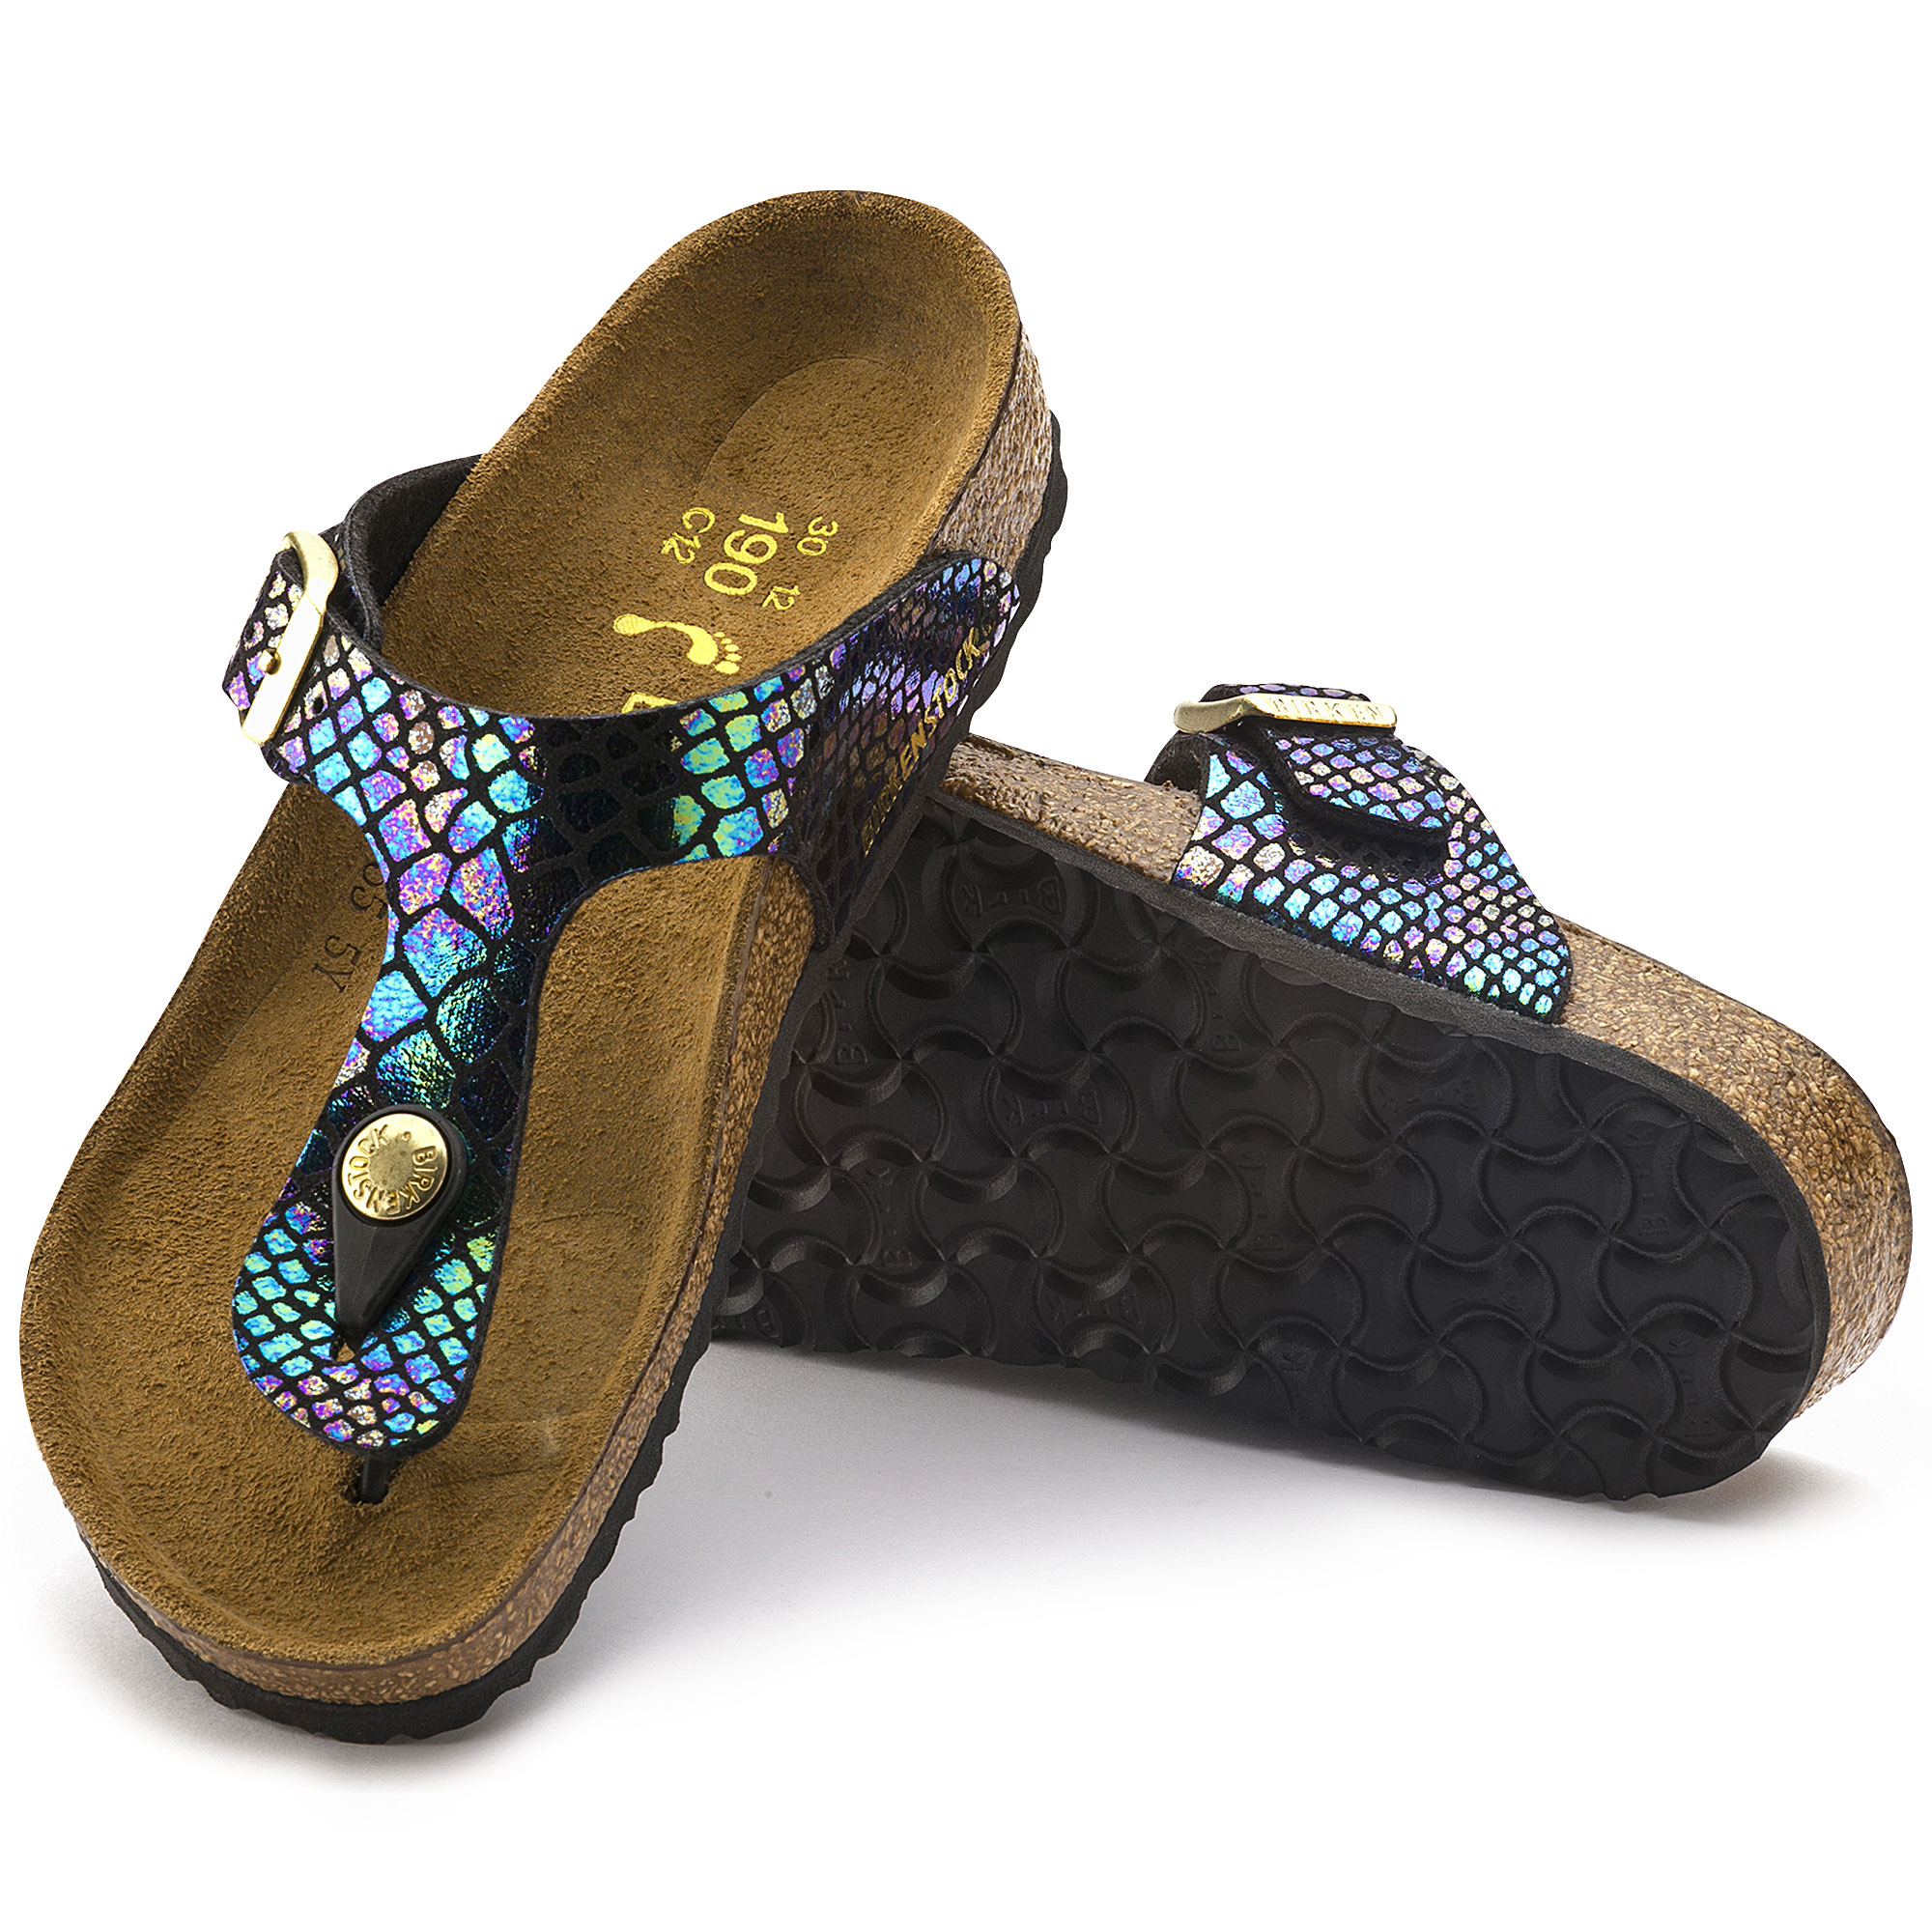 Gizeh Birko Flor Shiny Snake Black Multicolor